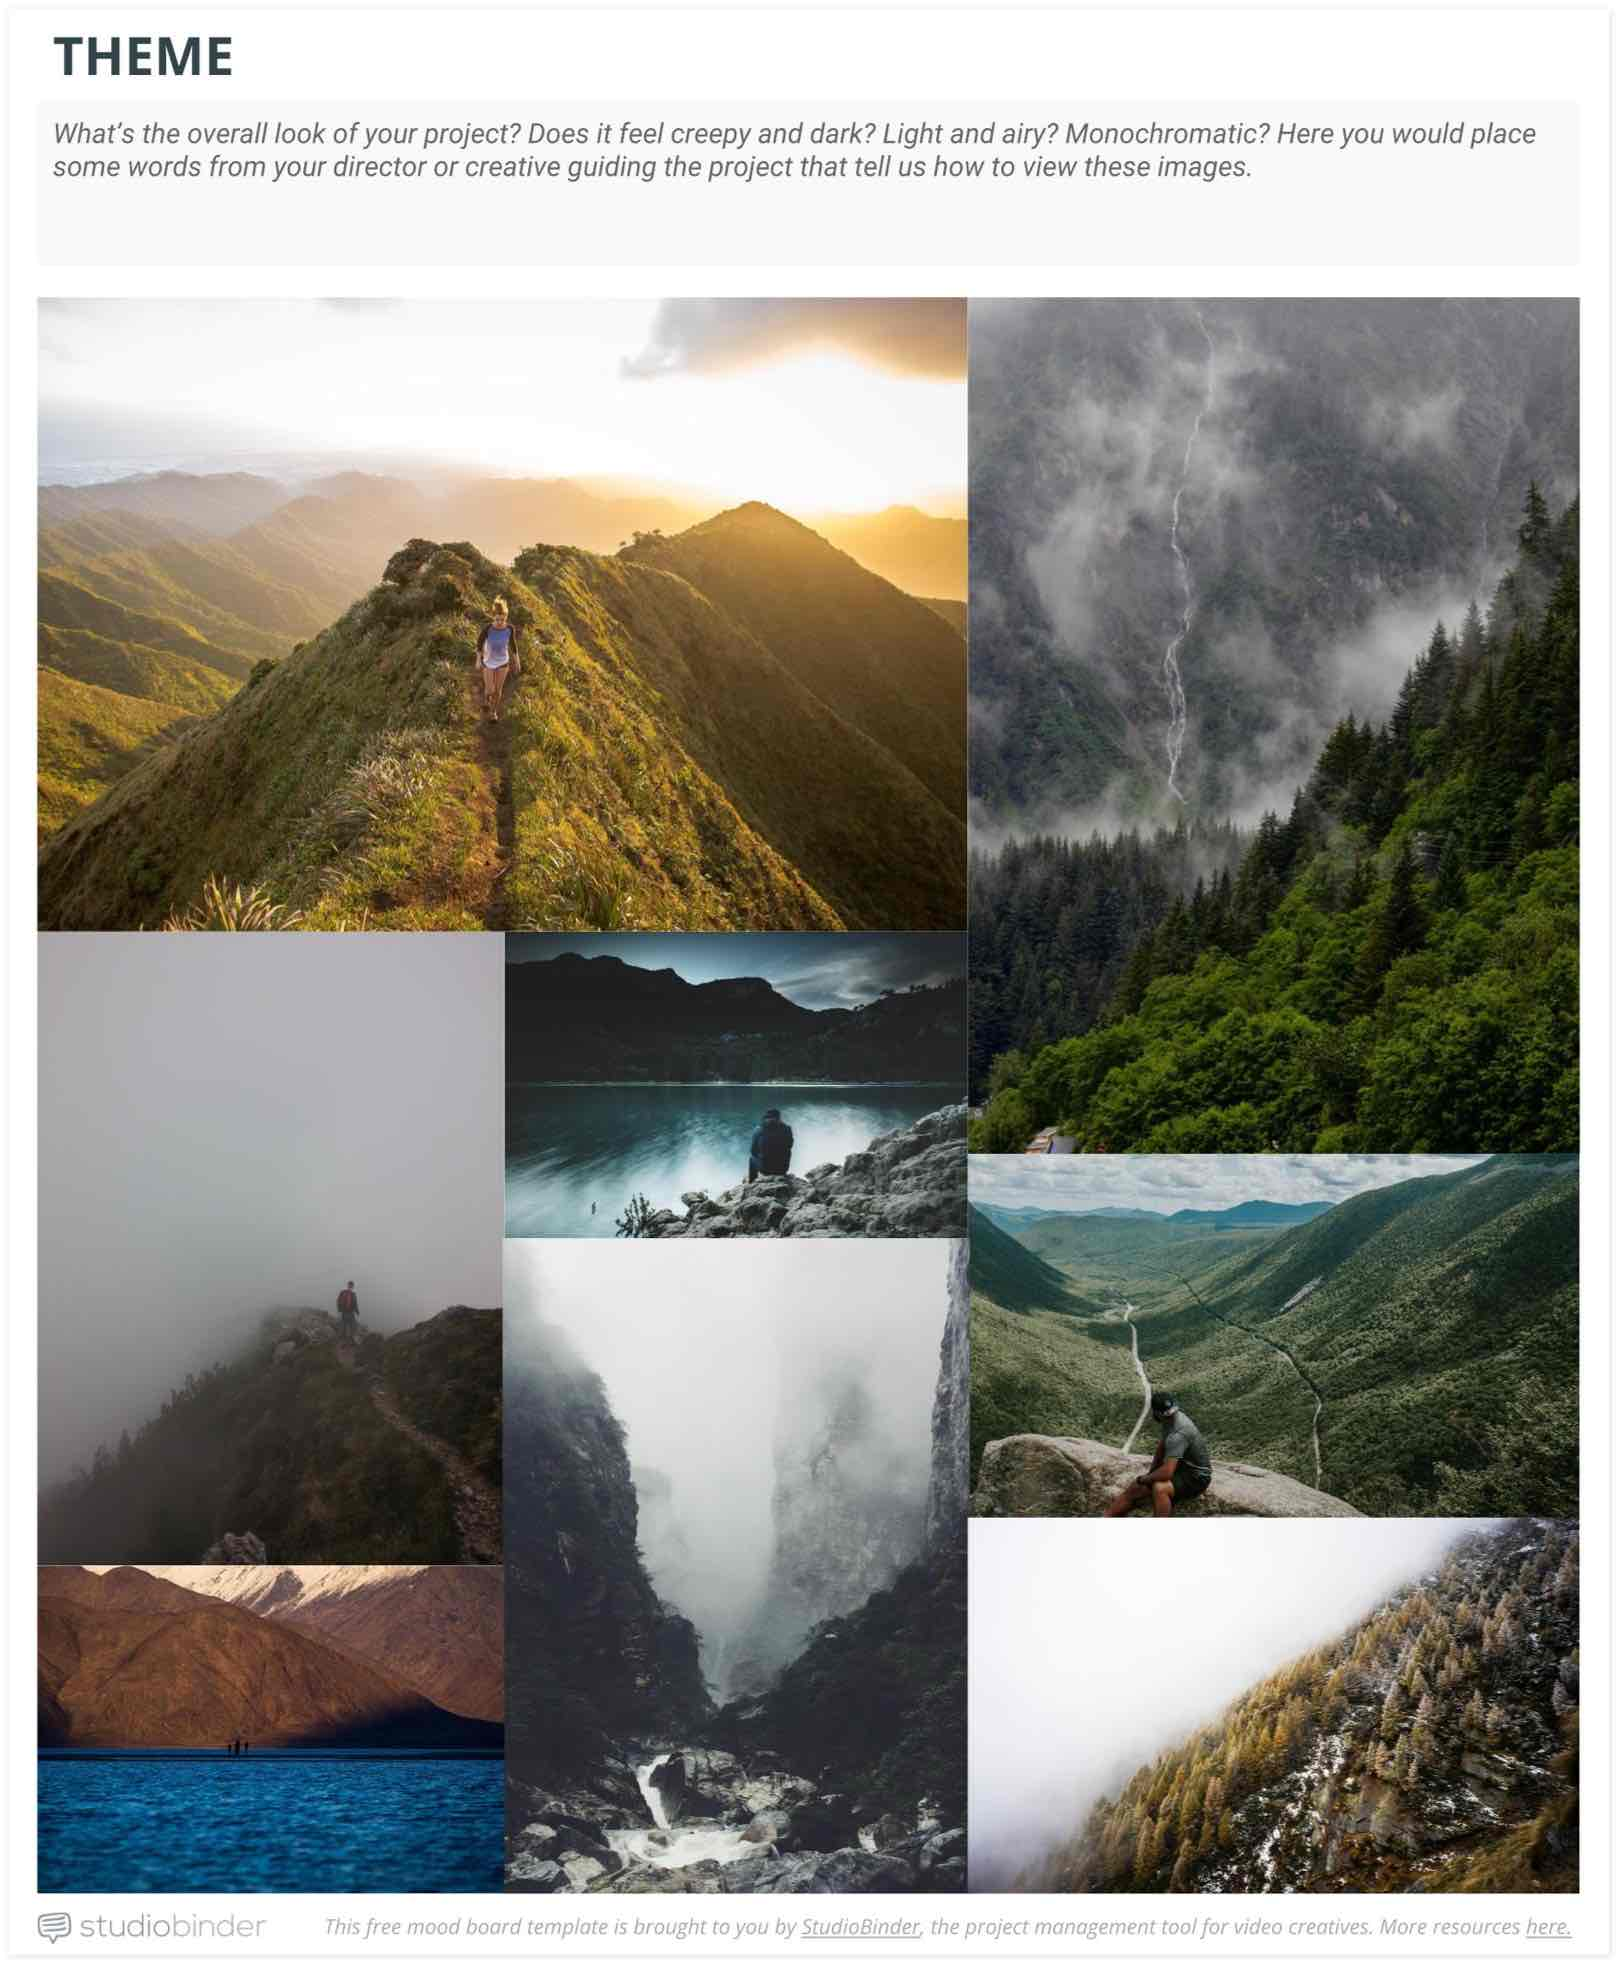 Top 14 Mood Board Apps of 2017 for Video Production [with FREE Template] - StudioBinder